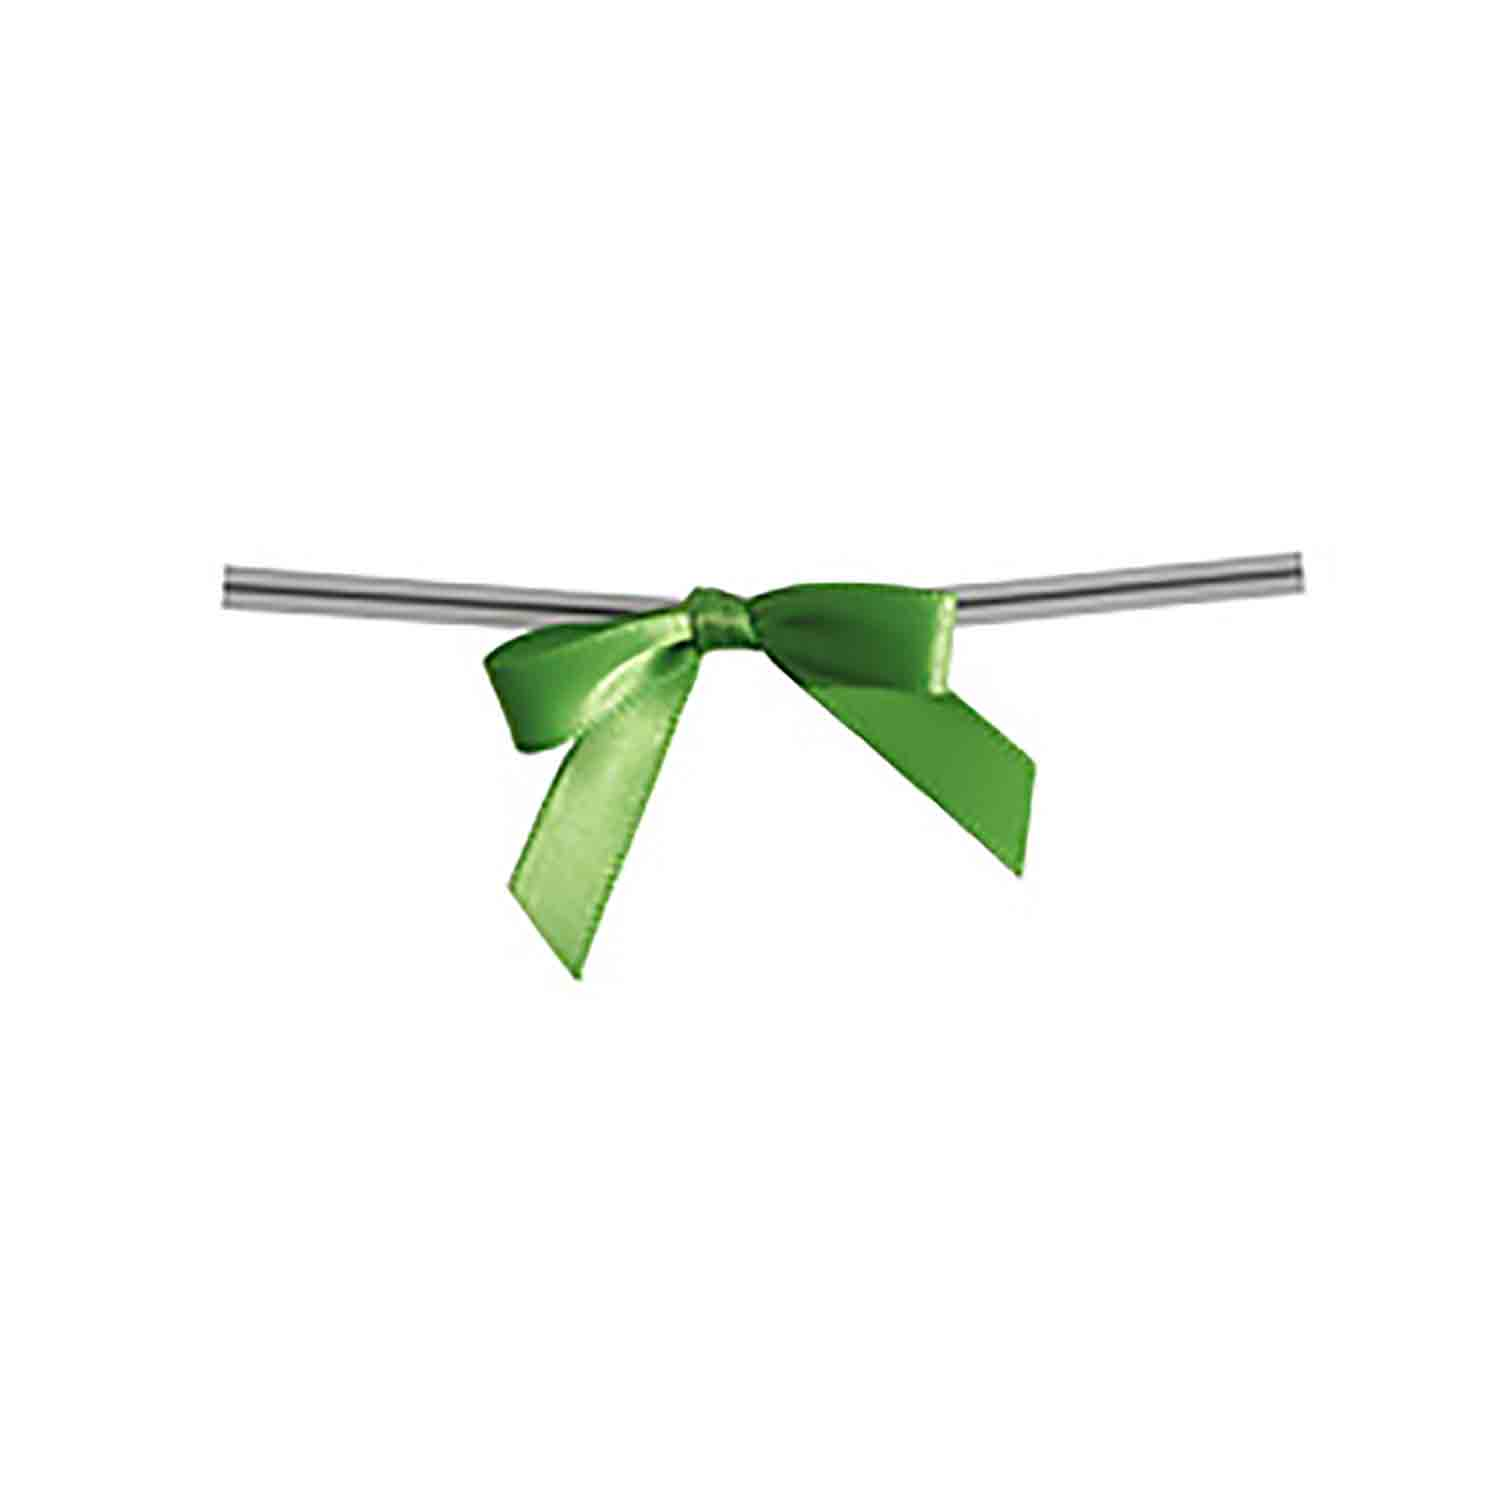 Kiwi Green Twist Tie Bows